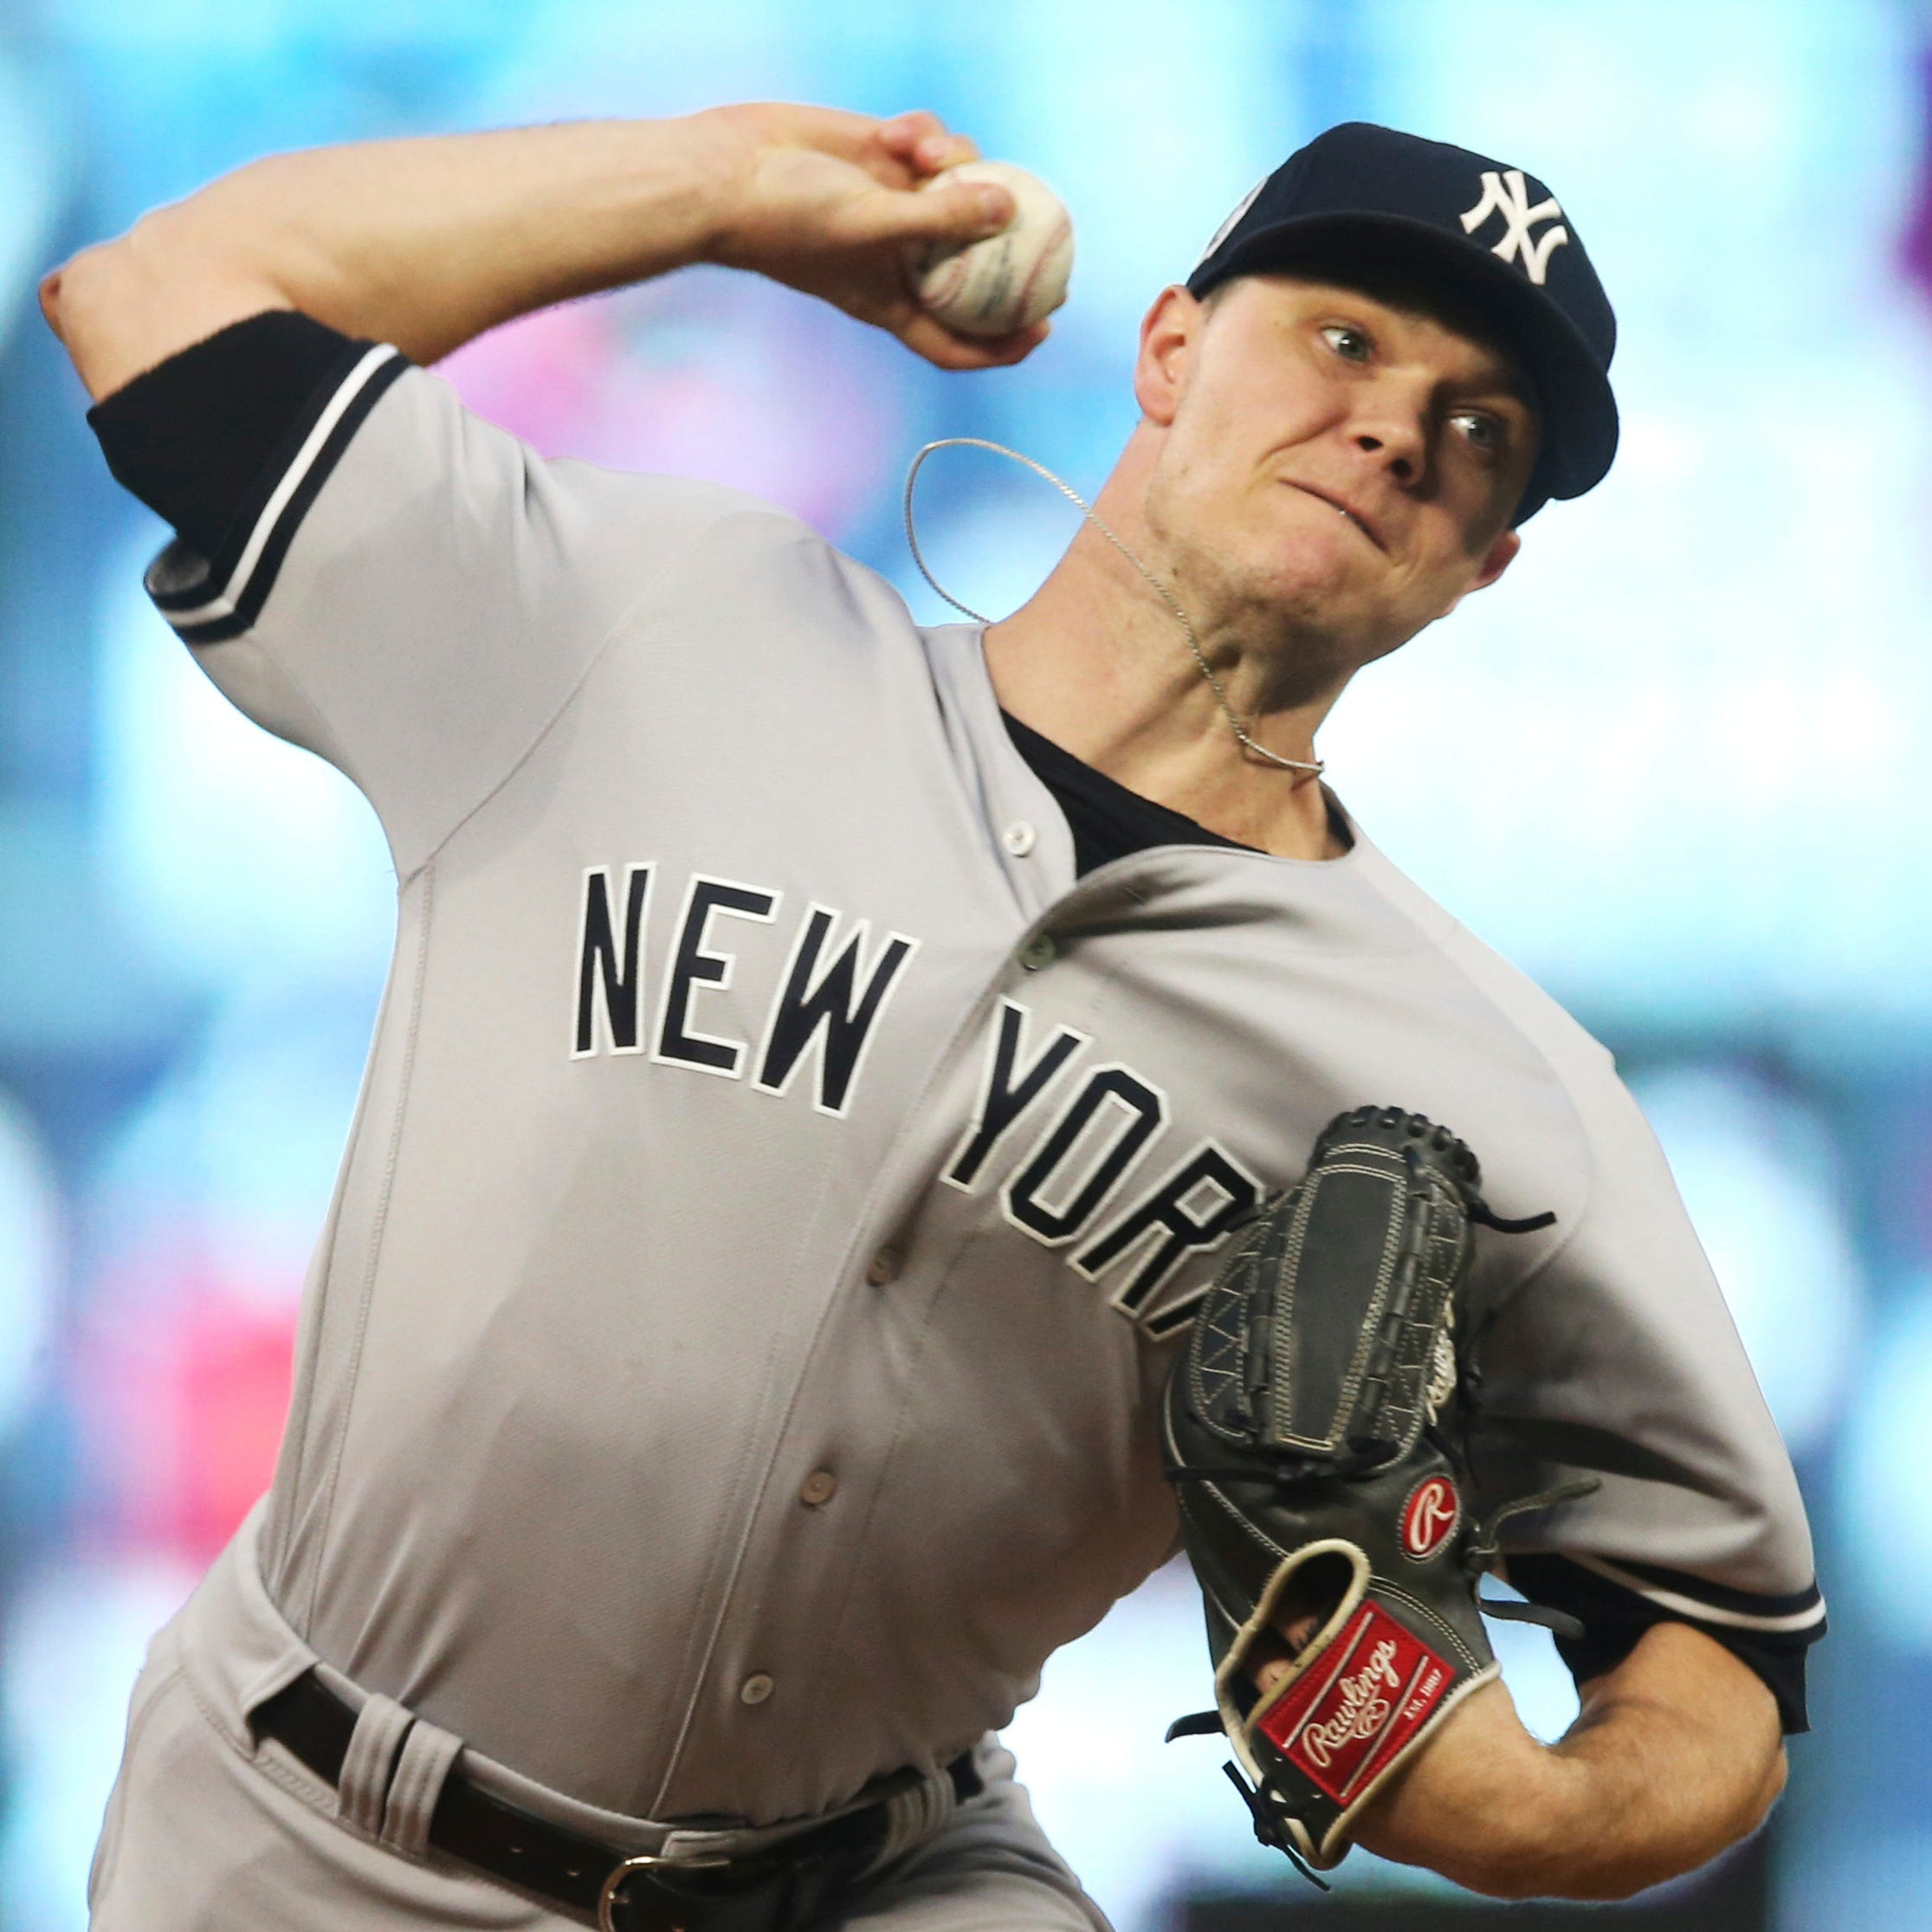 Yankees rumors: Sonny Gray trade discussed with Reds, Athletics